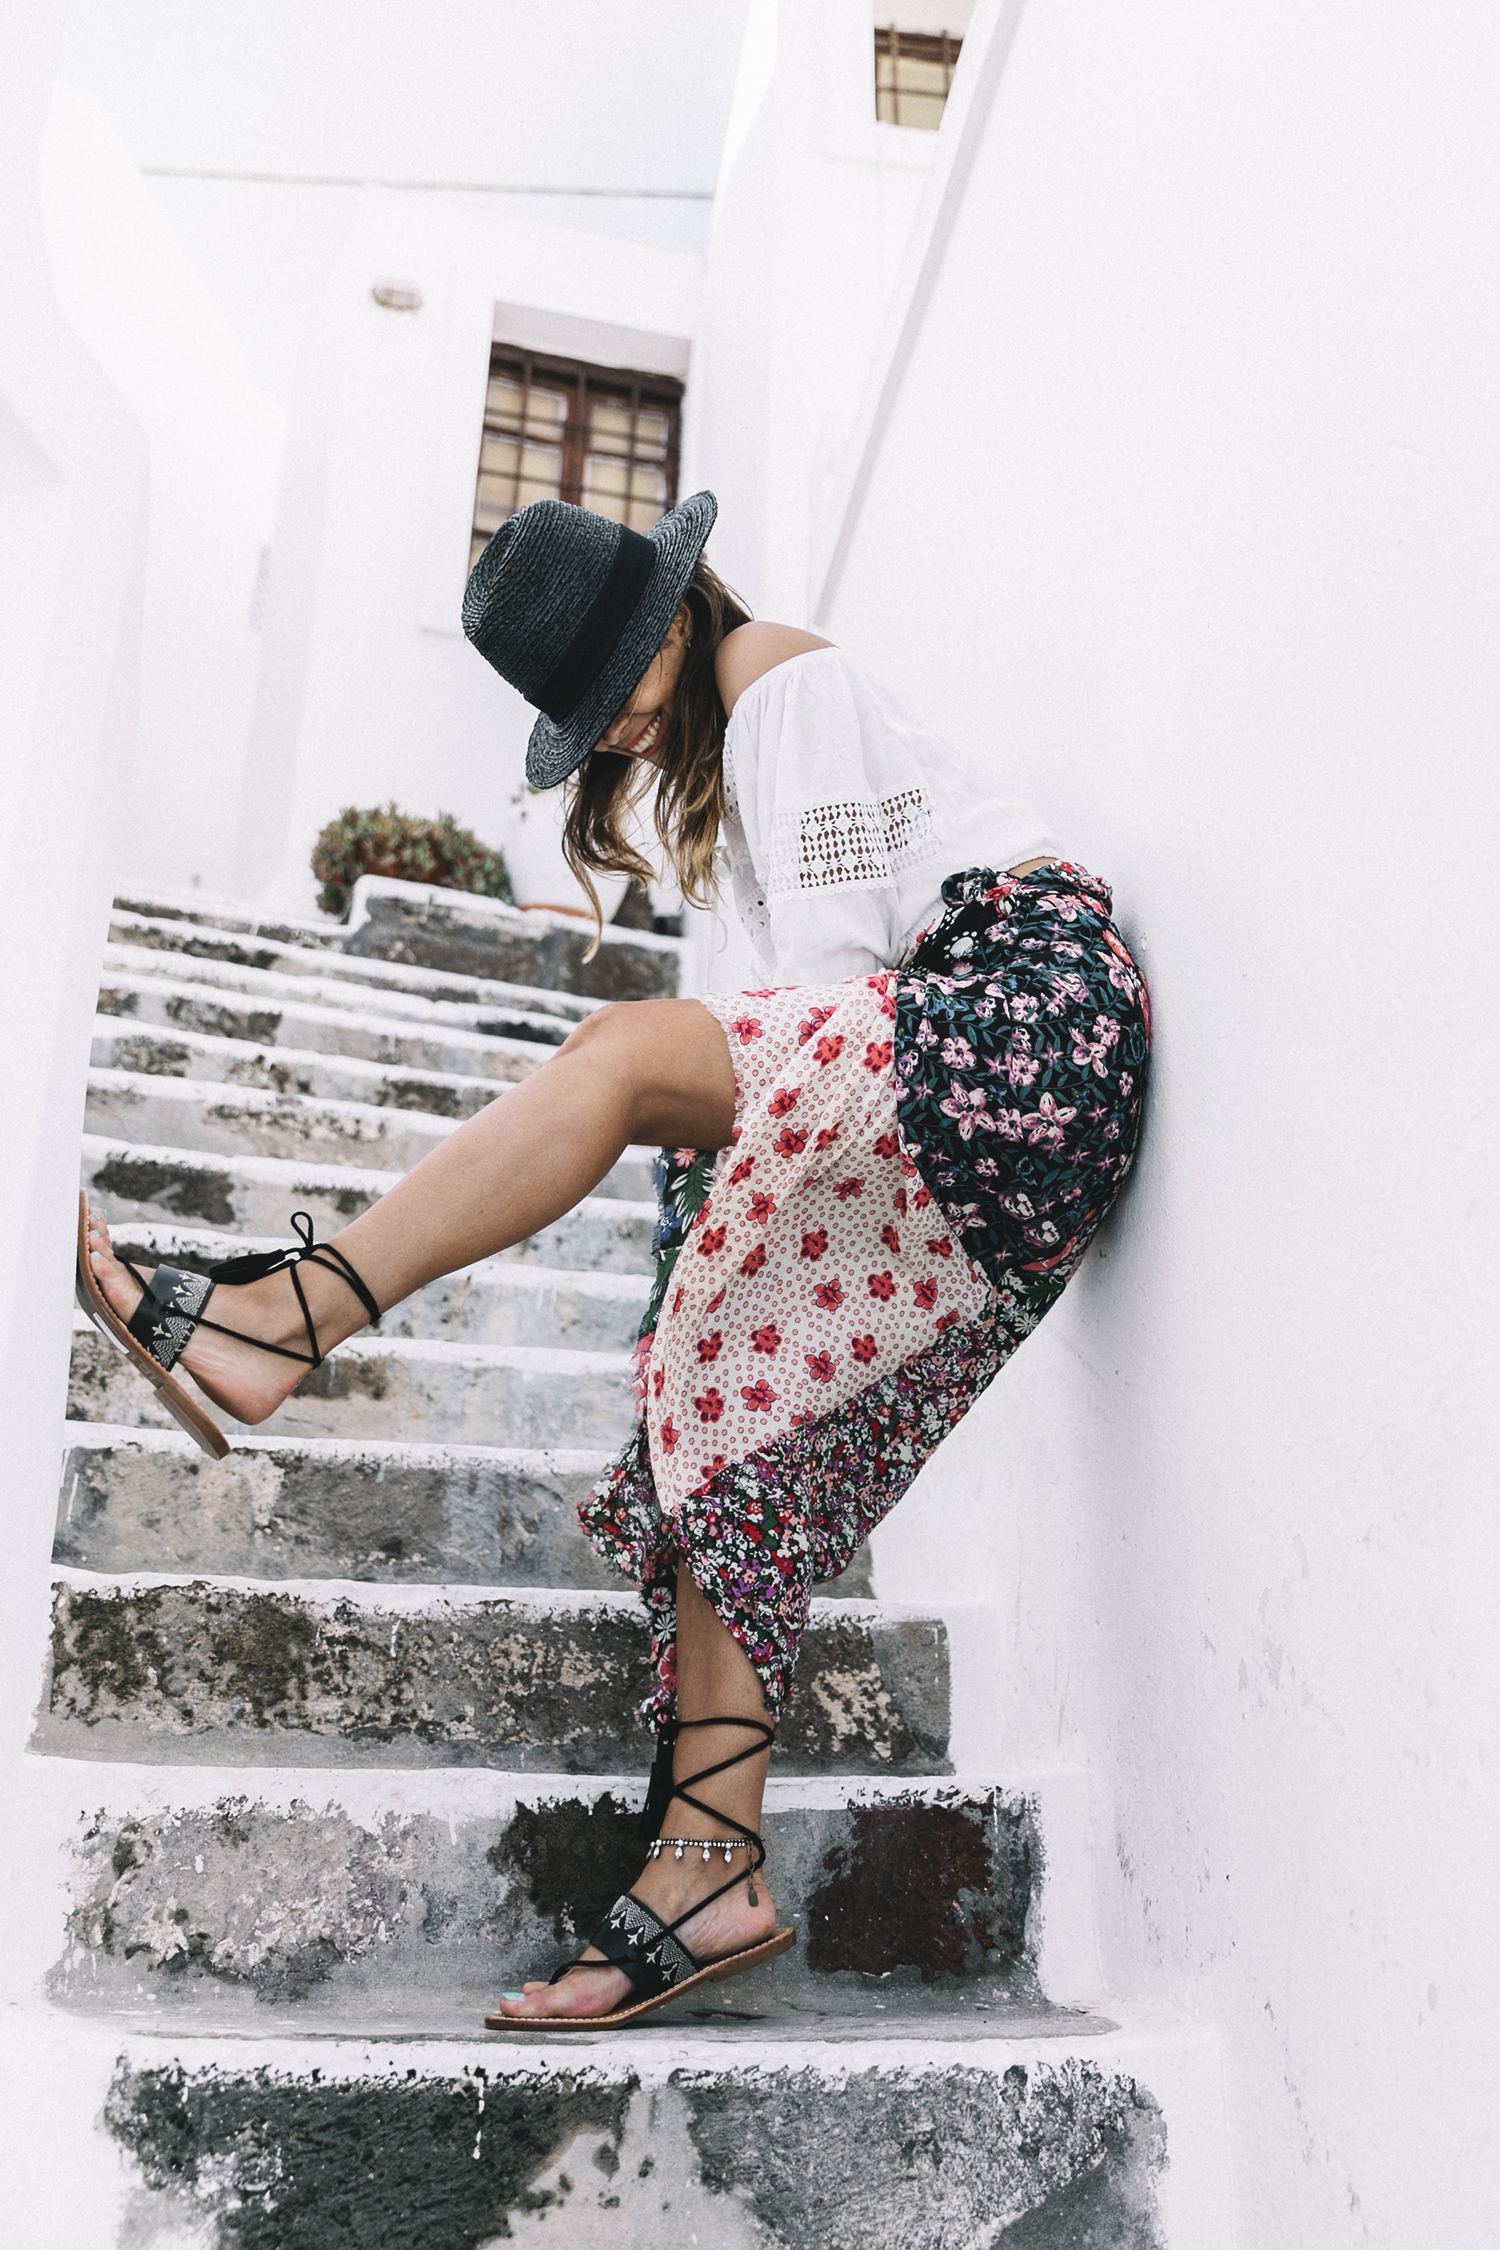 Scarf_As_Skirt_Boho_Top-Straw_Hat-Soludos_Escapes-Soludos_Espadrilles-Summer-Santorini-Collage_Vintage-14